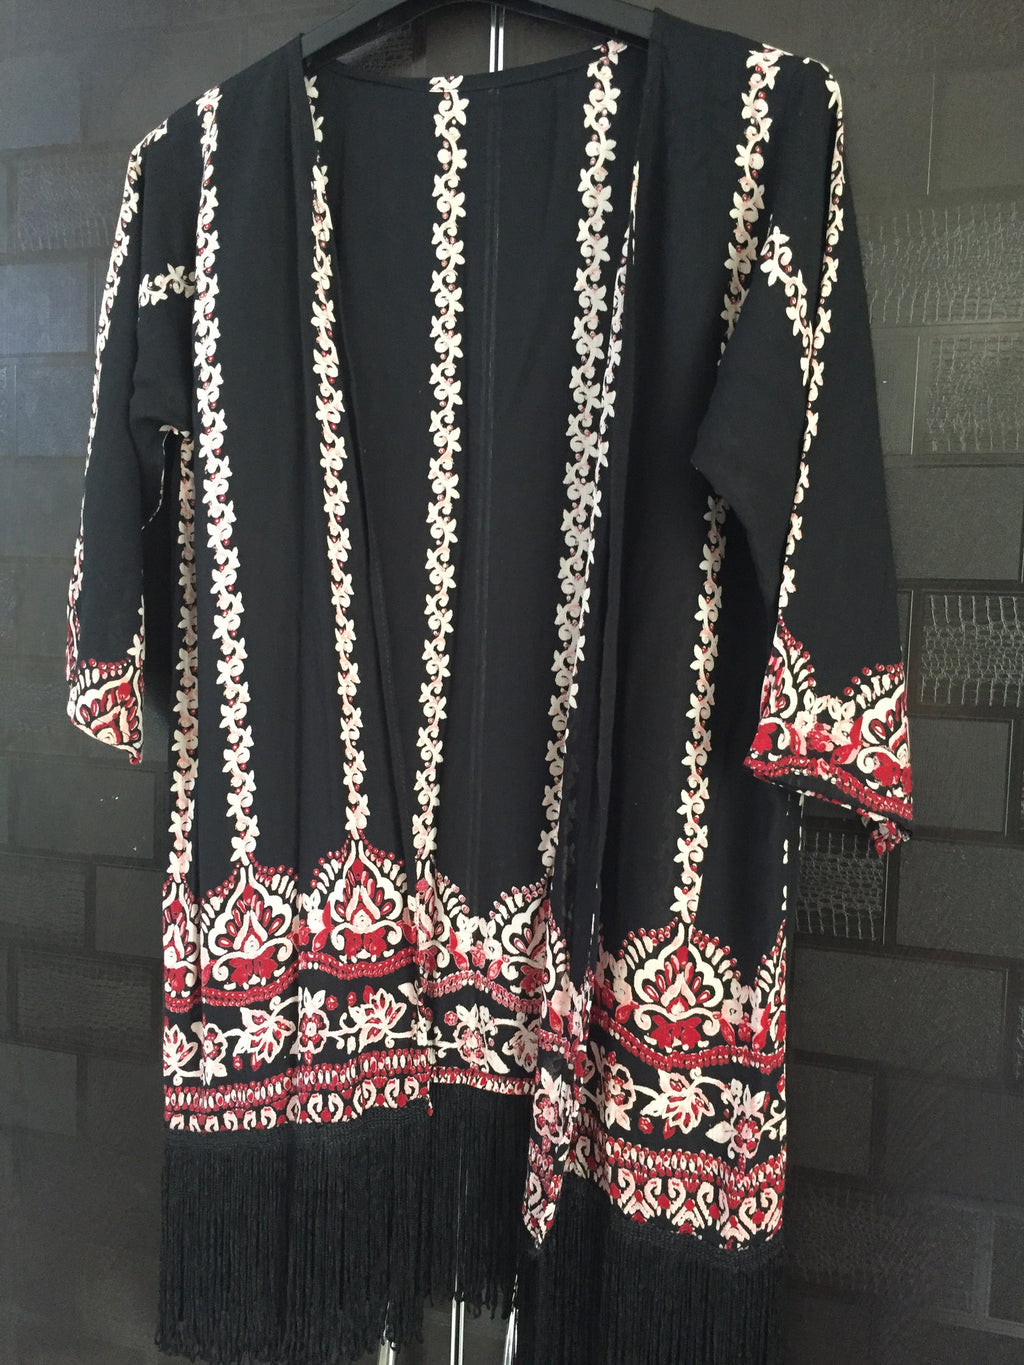 Yellowish - Pink Panel Print Shrug with Tassels.